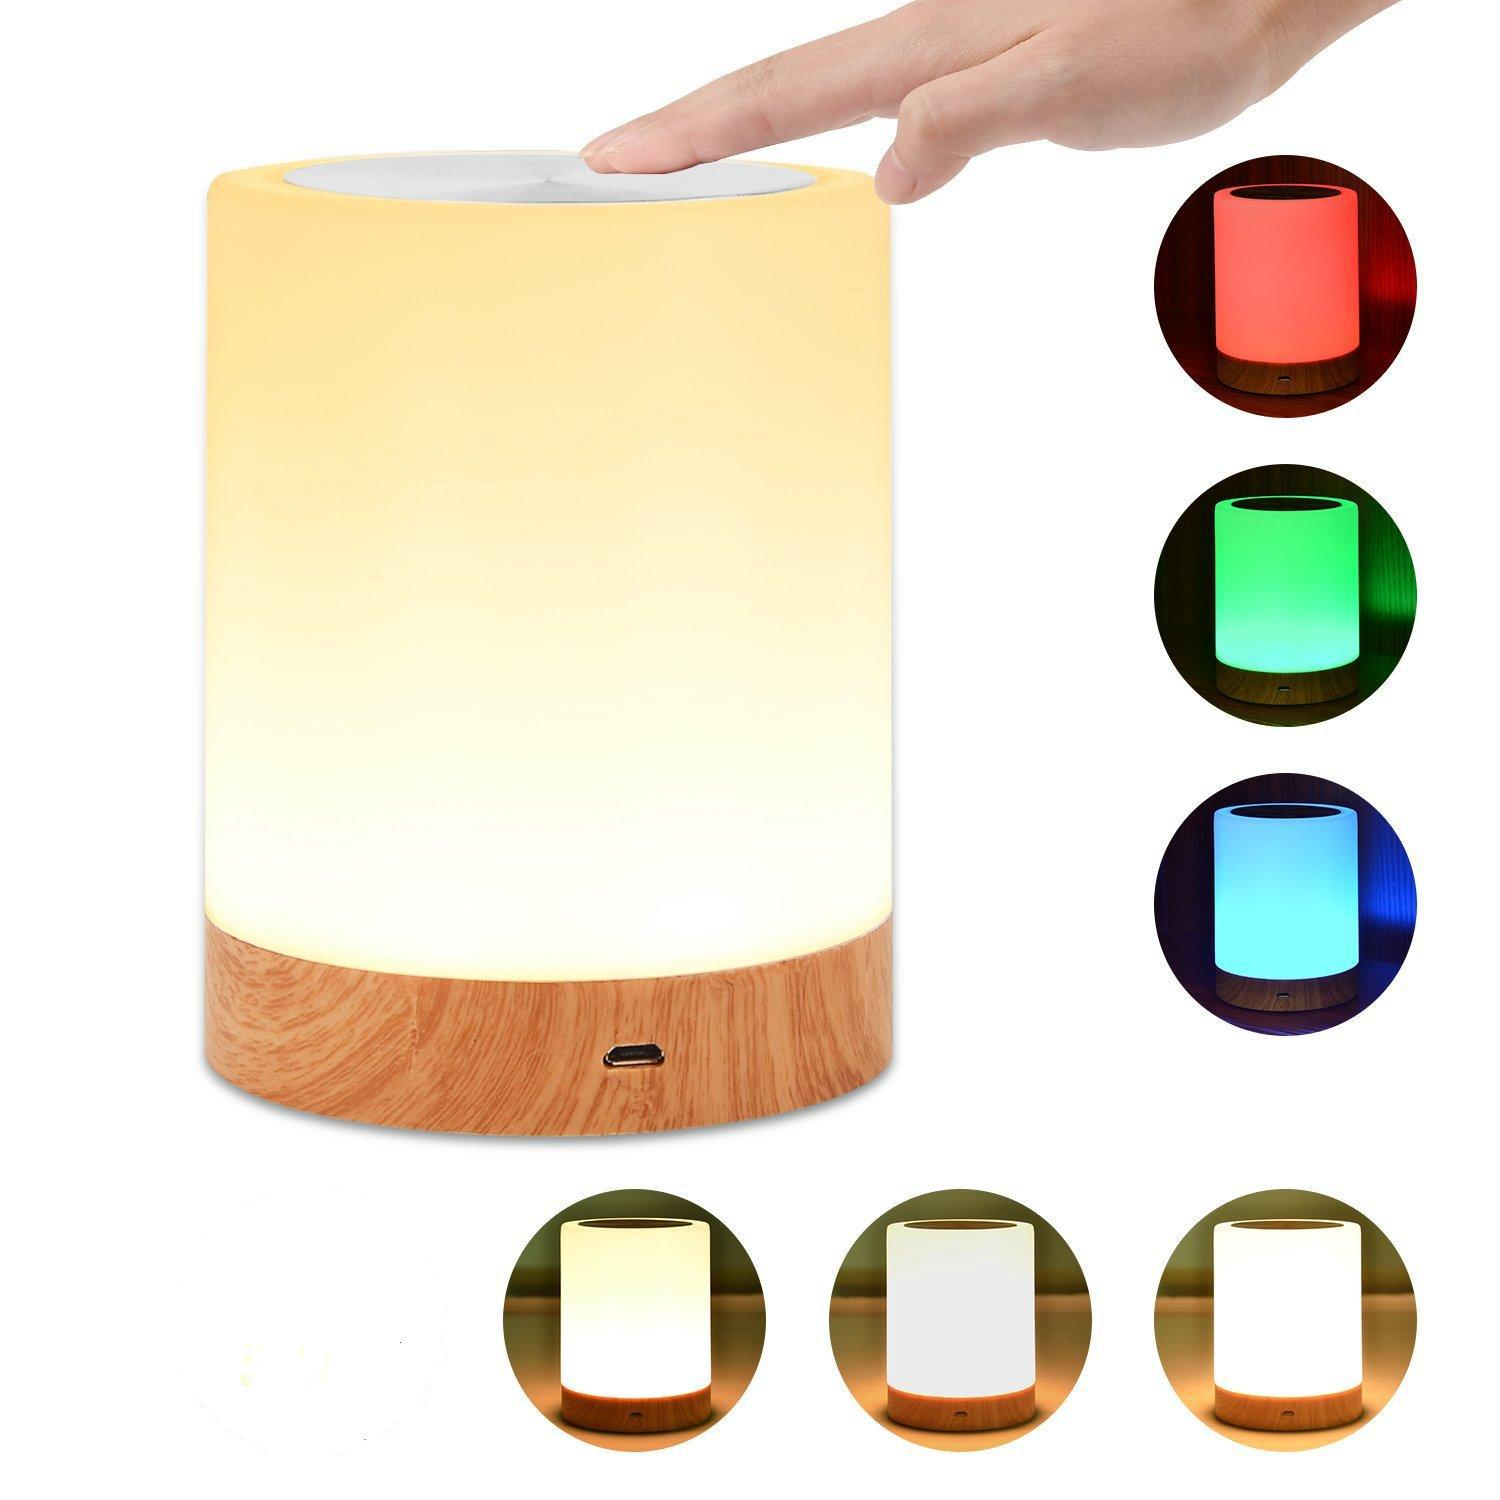 Innovative LED Touch Control Night Light Induction Dimmer Lamp Smart Bedside Lamp RGB Color Change Rechargeable Night Lamp